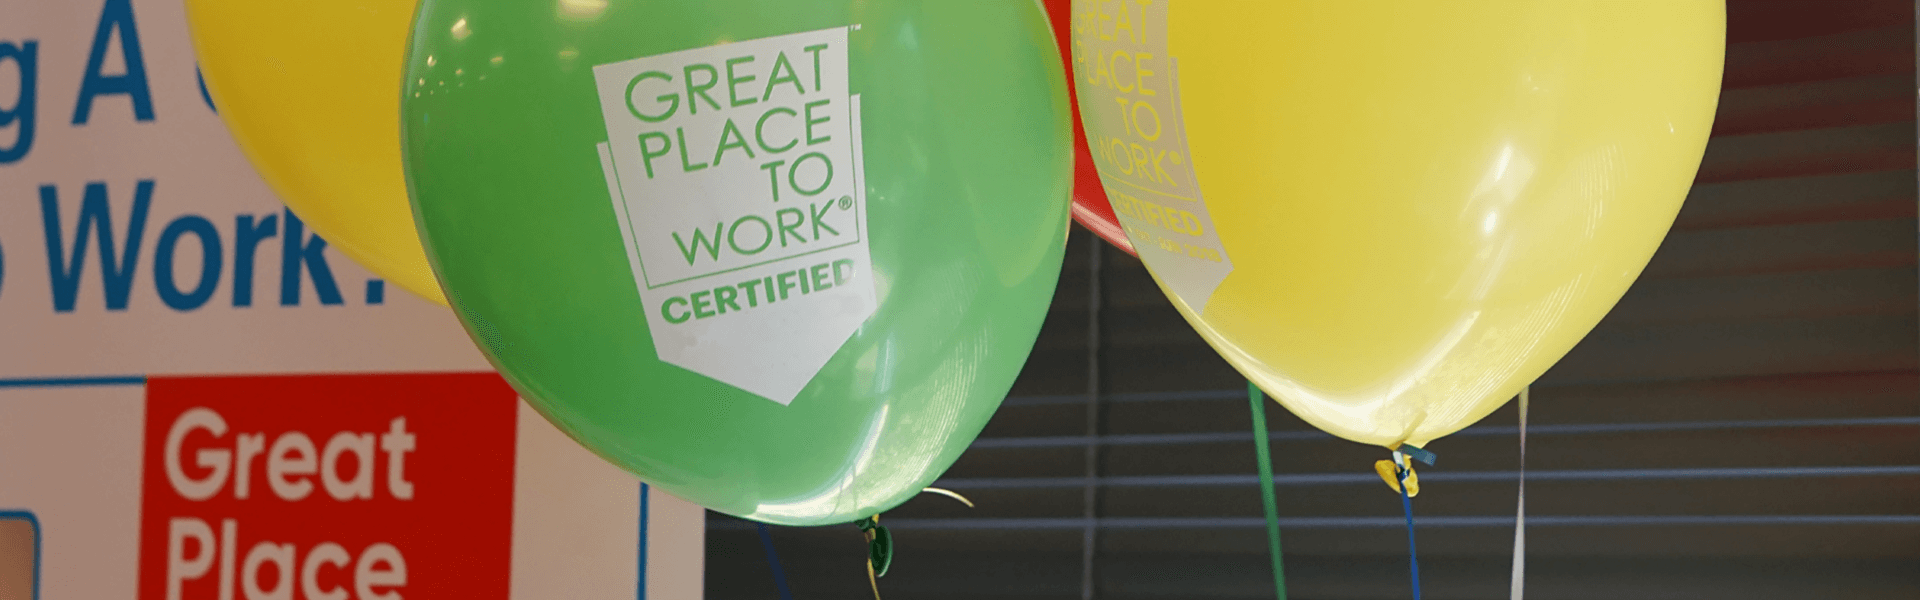 great-place-to-work-balloons